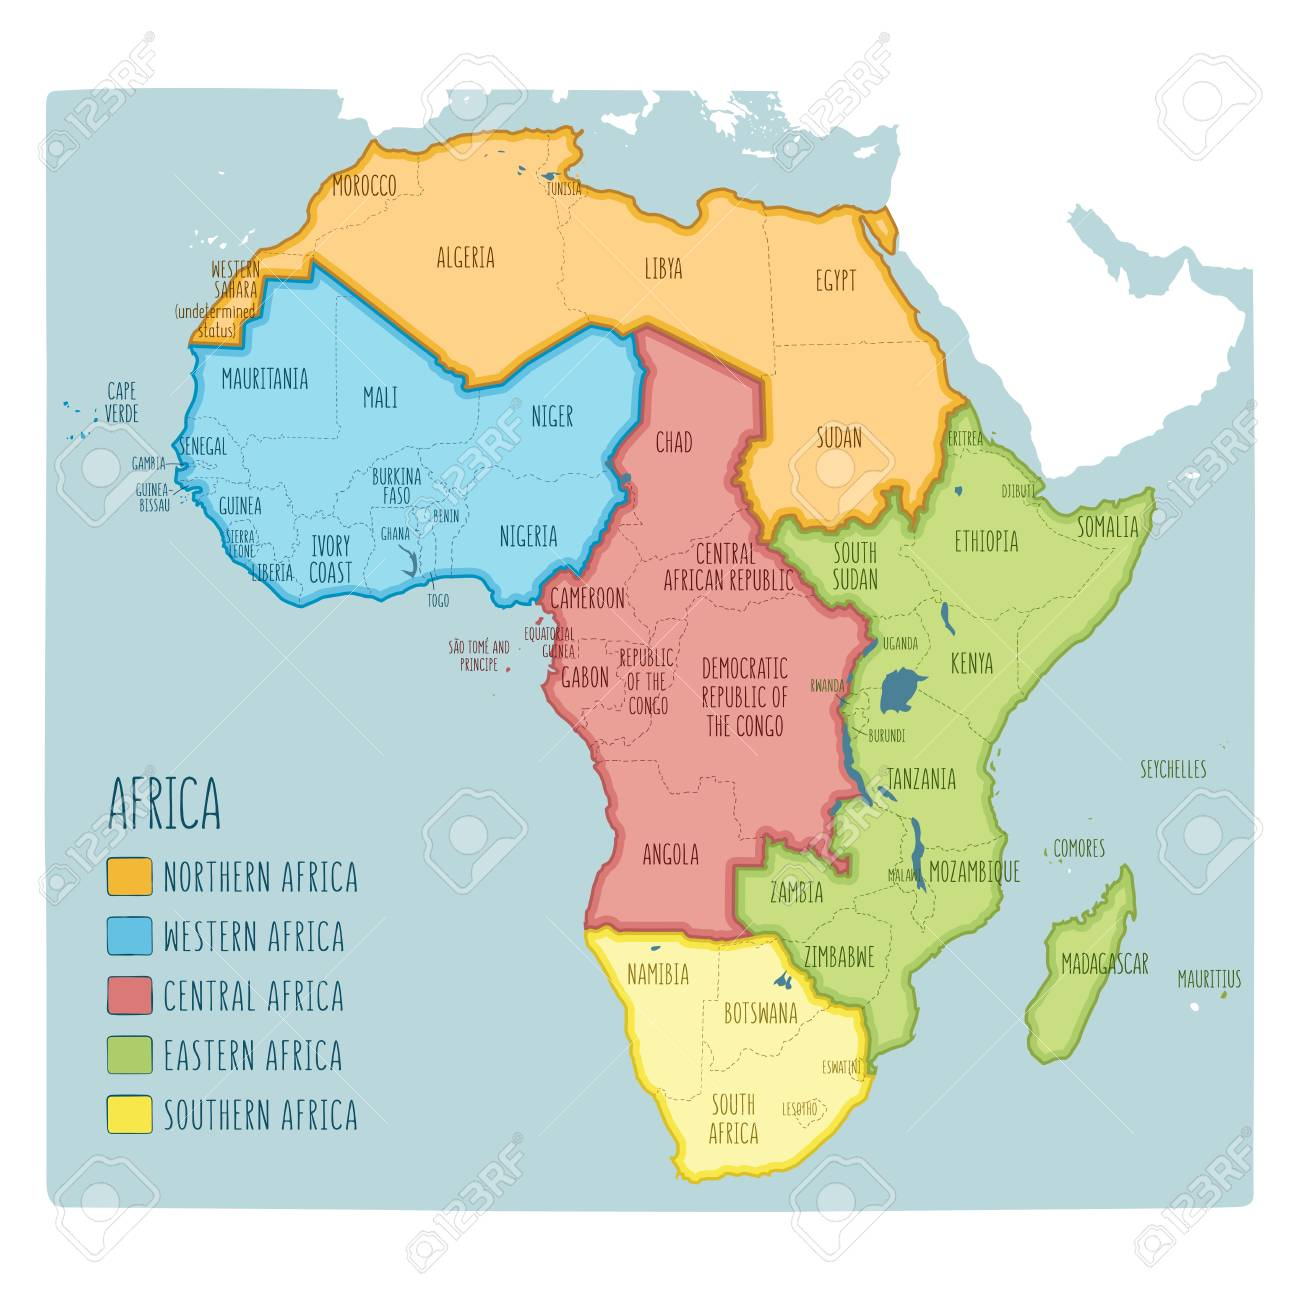 Map Of Africa Regions.Vector Political Map Of Africa 5 Regions Of Africa Colorful